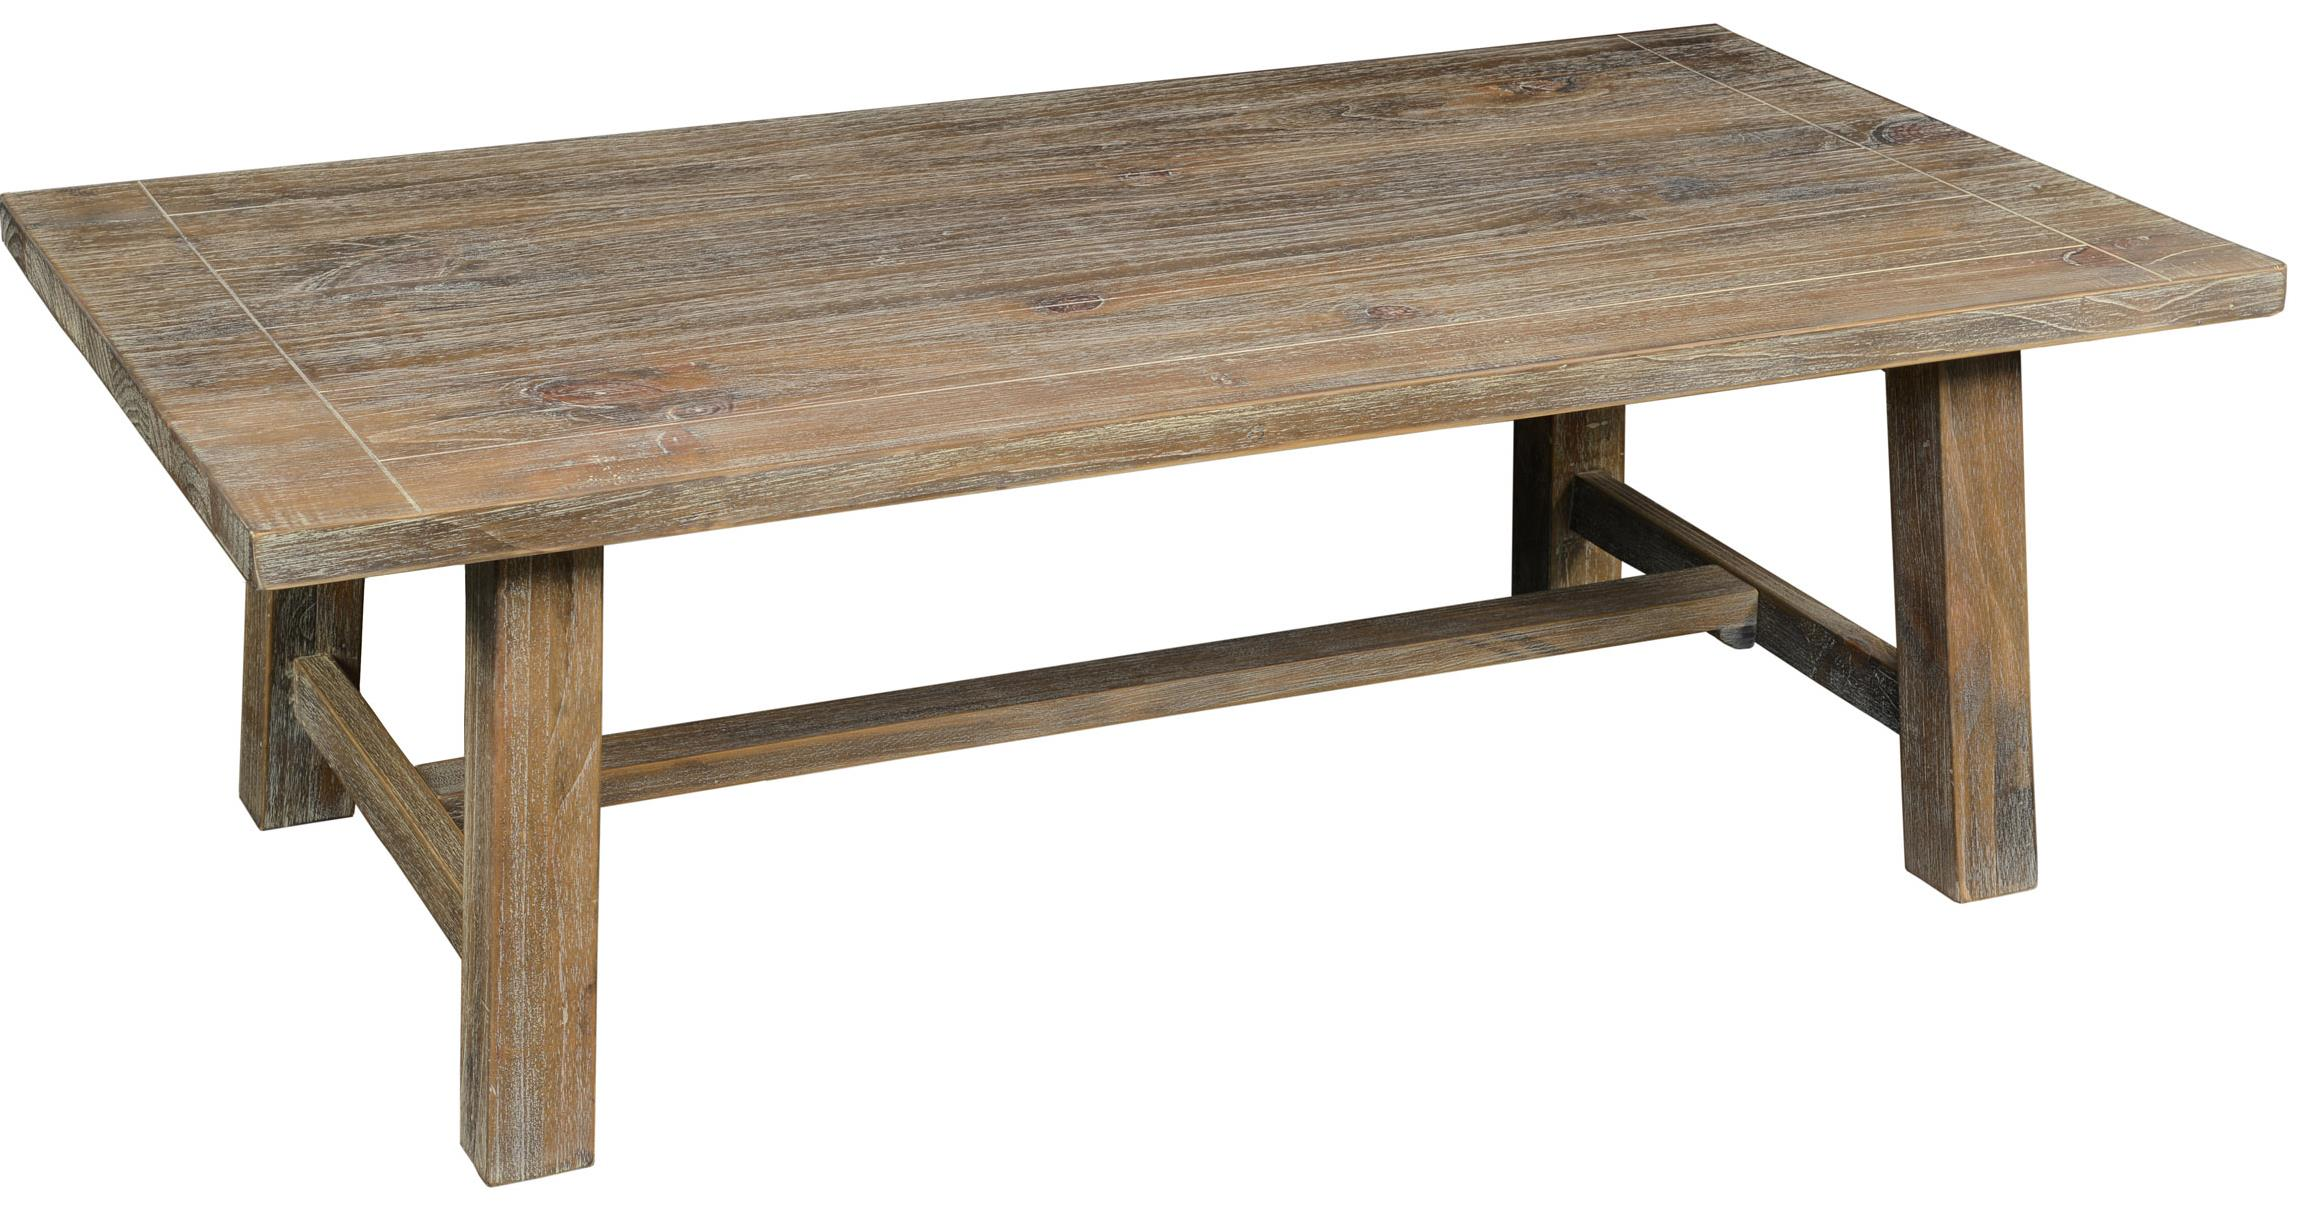 Classic home maxwell pine coffee table with trestle base for Classic home furniture jacksonville fl